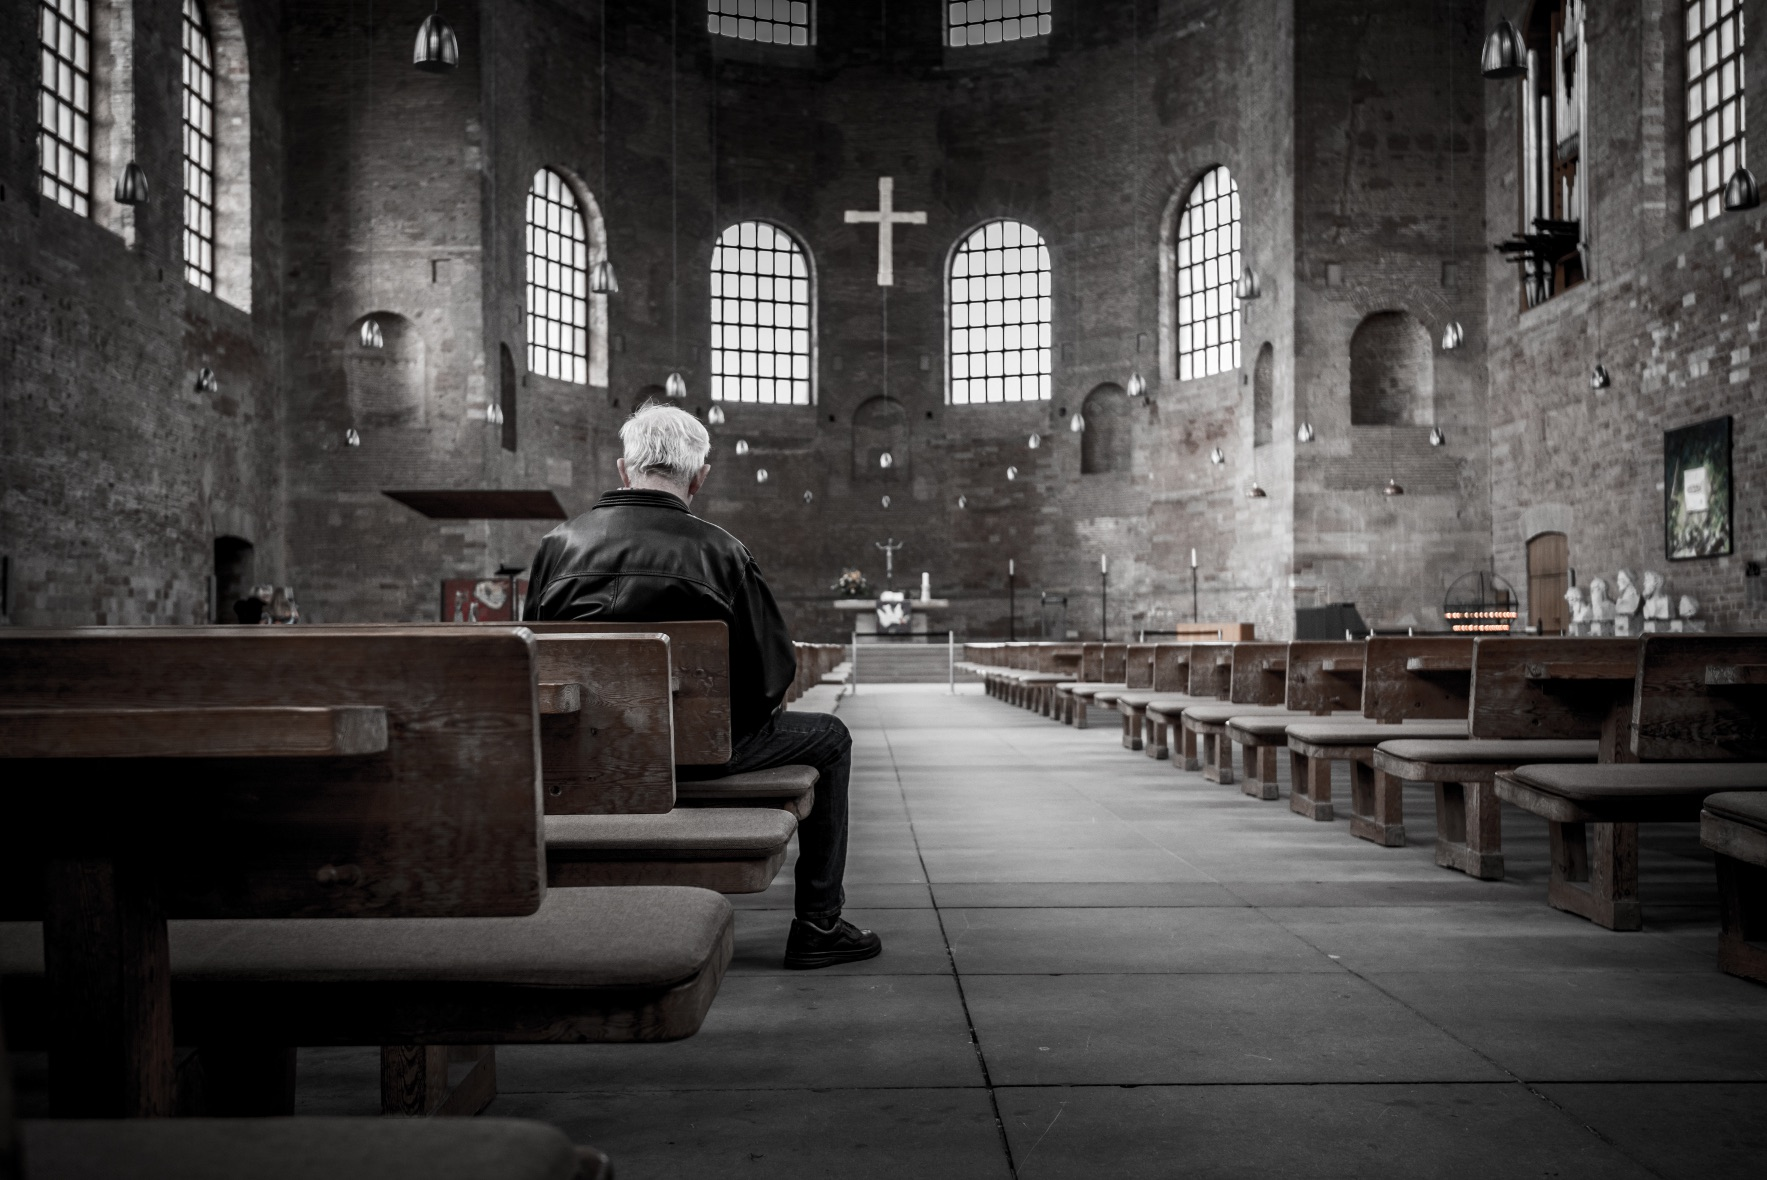 Man sitting in an empty sanctuary